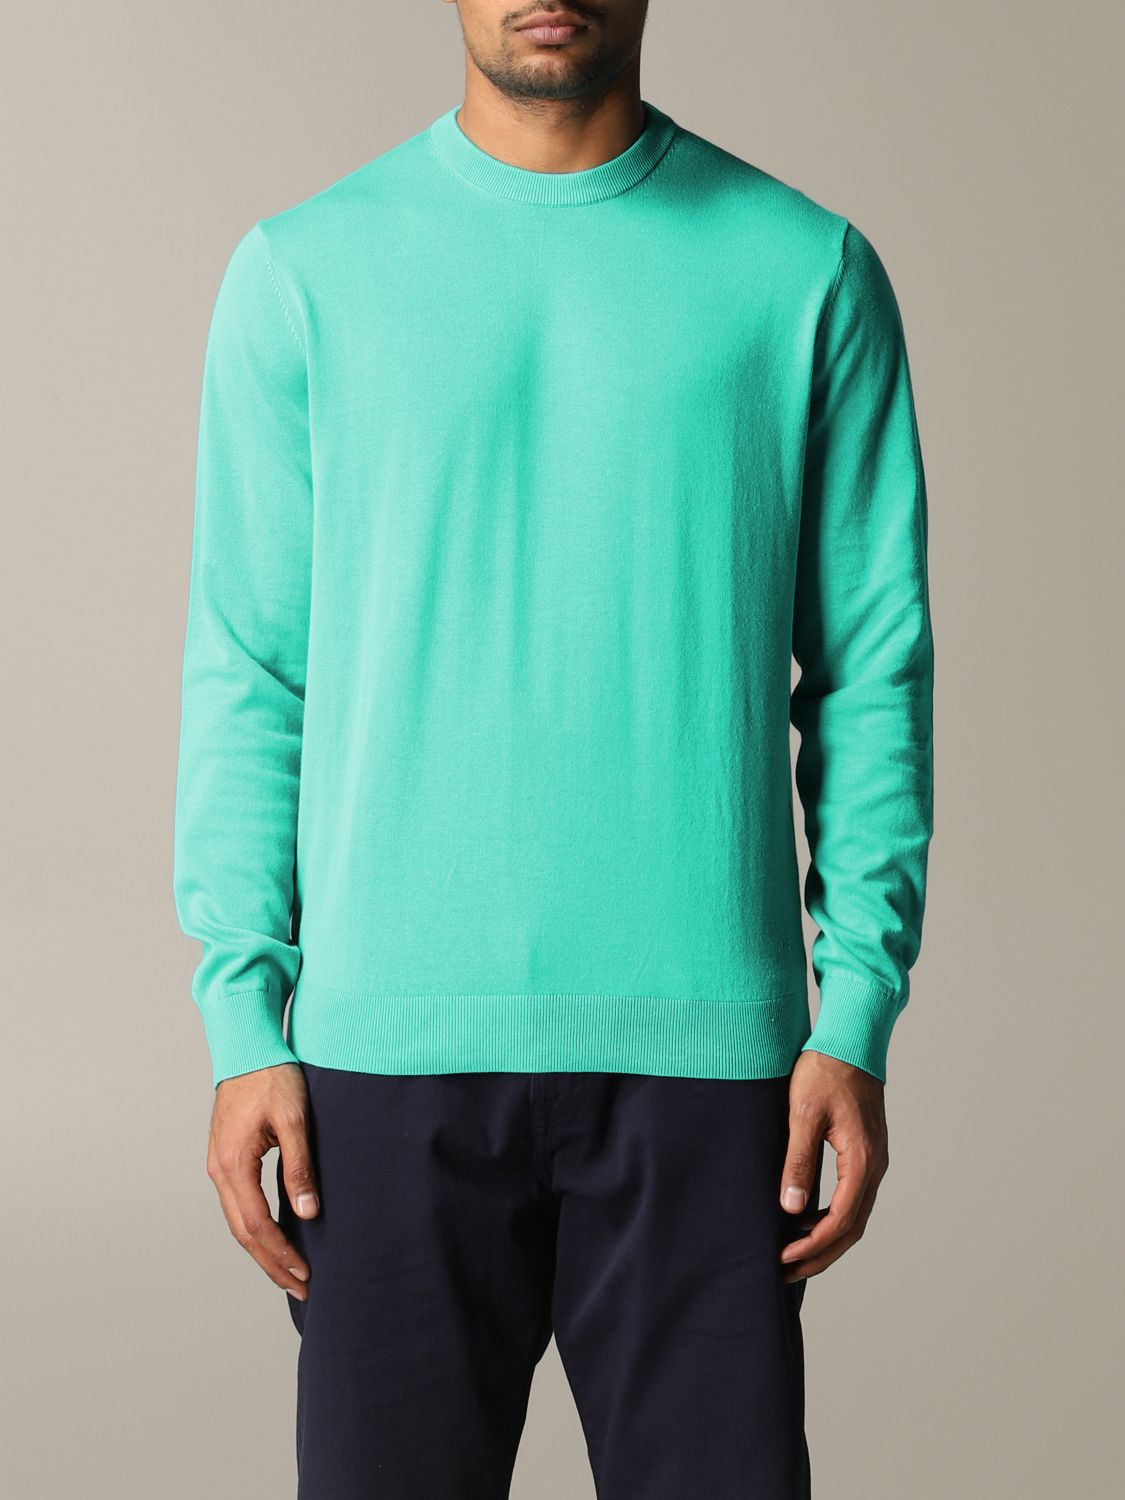 Jumper men Paul Smith London sea 1